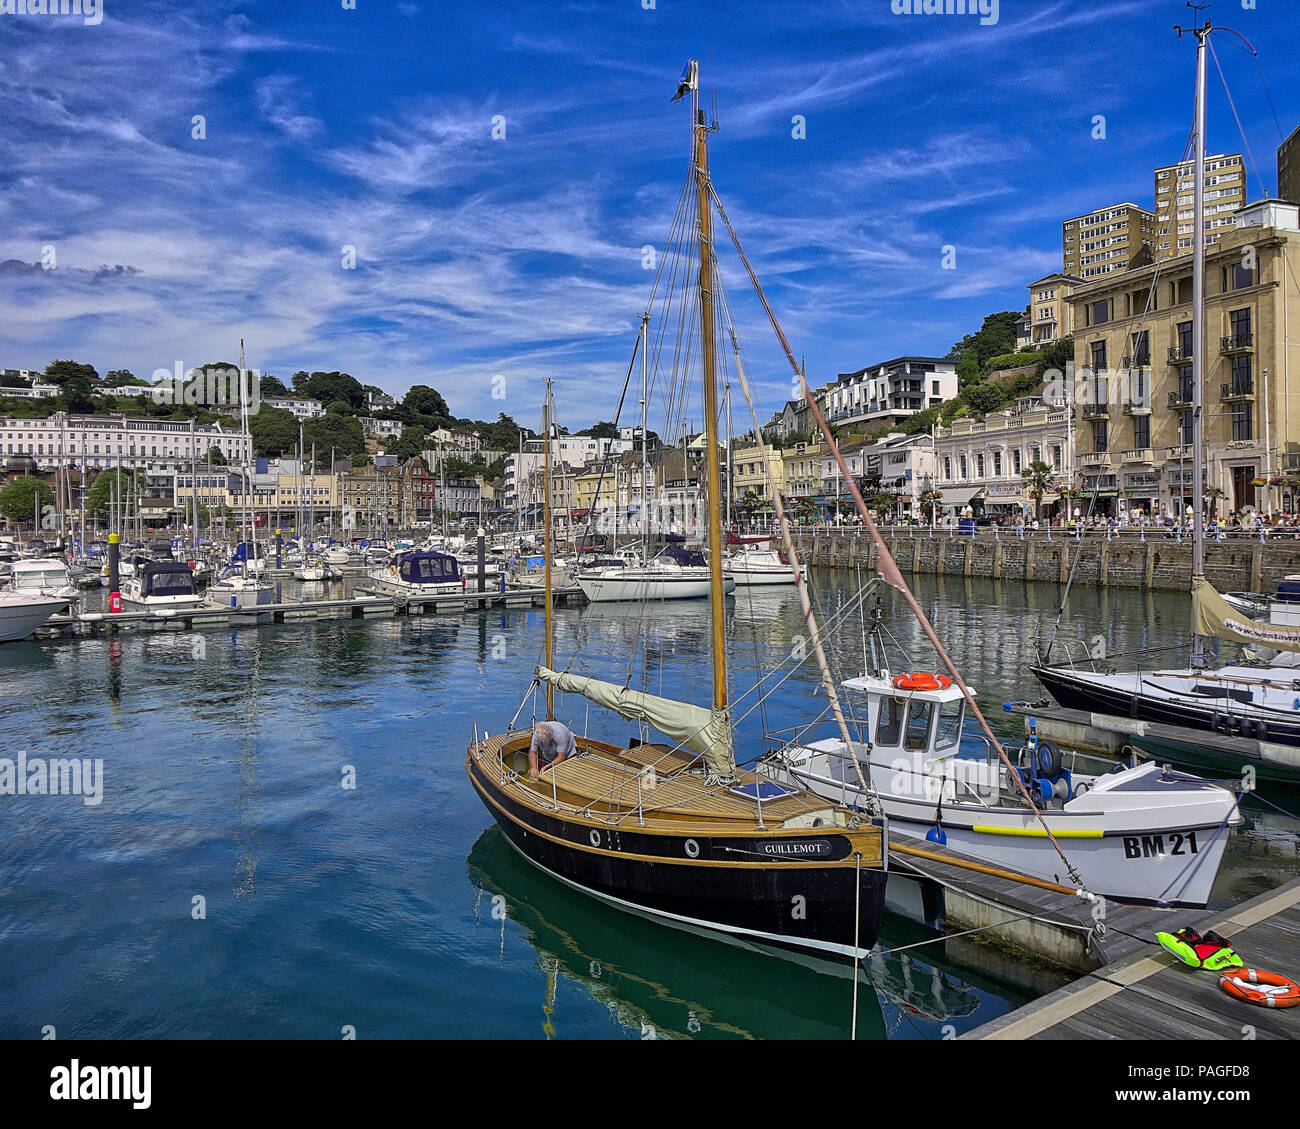 GB - DEVON: The busy inner harbour at Torquay (HDR Image) - Stock Image